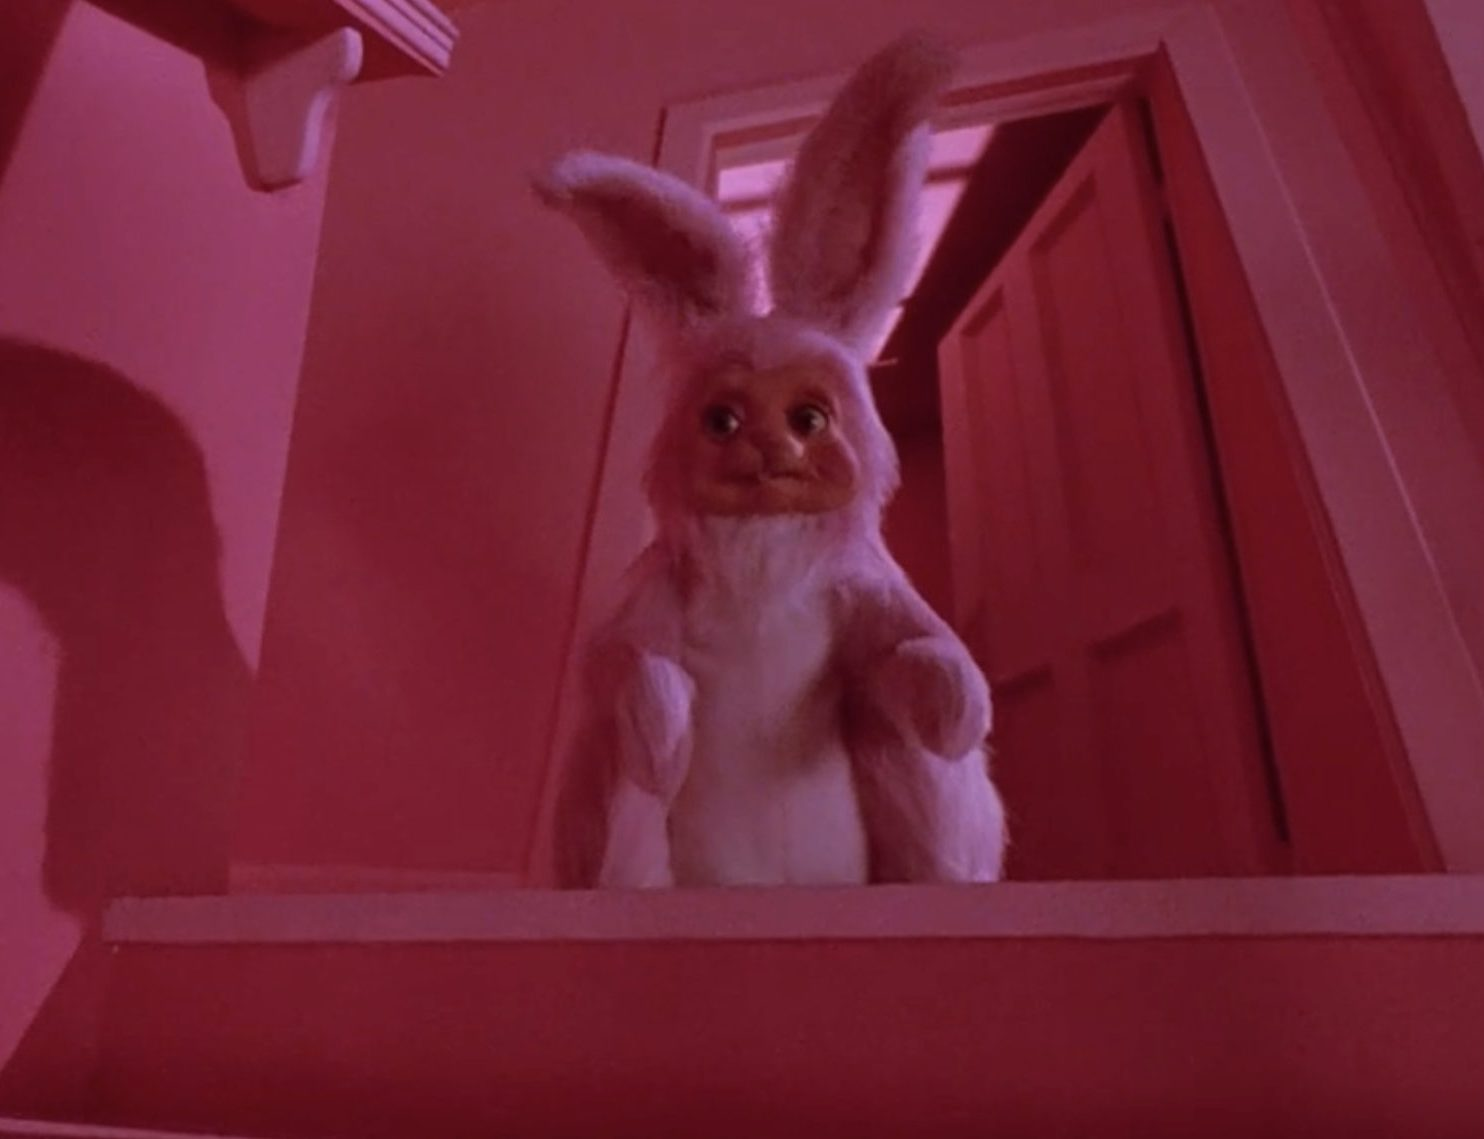 easterbunny 1 scaled 1 e1606223576793 30 Most Triumphant Truths About Bill & Ted's Bogus Journey